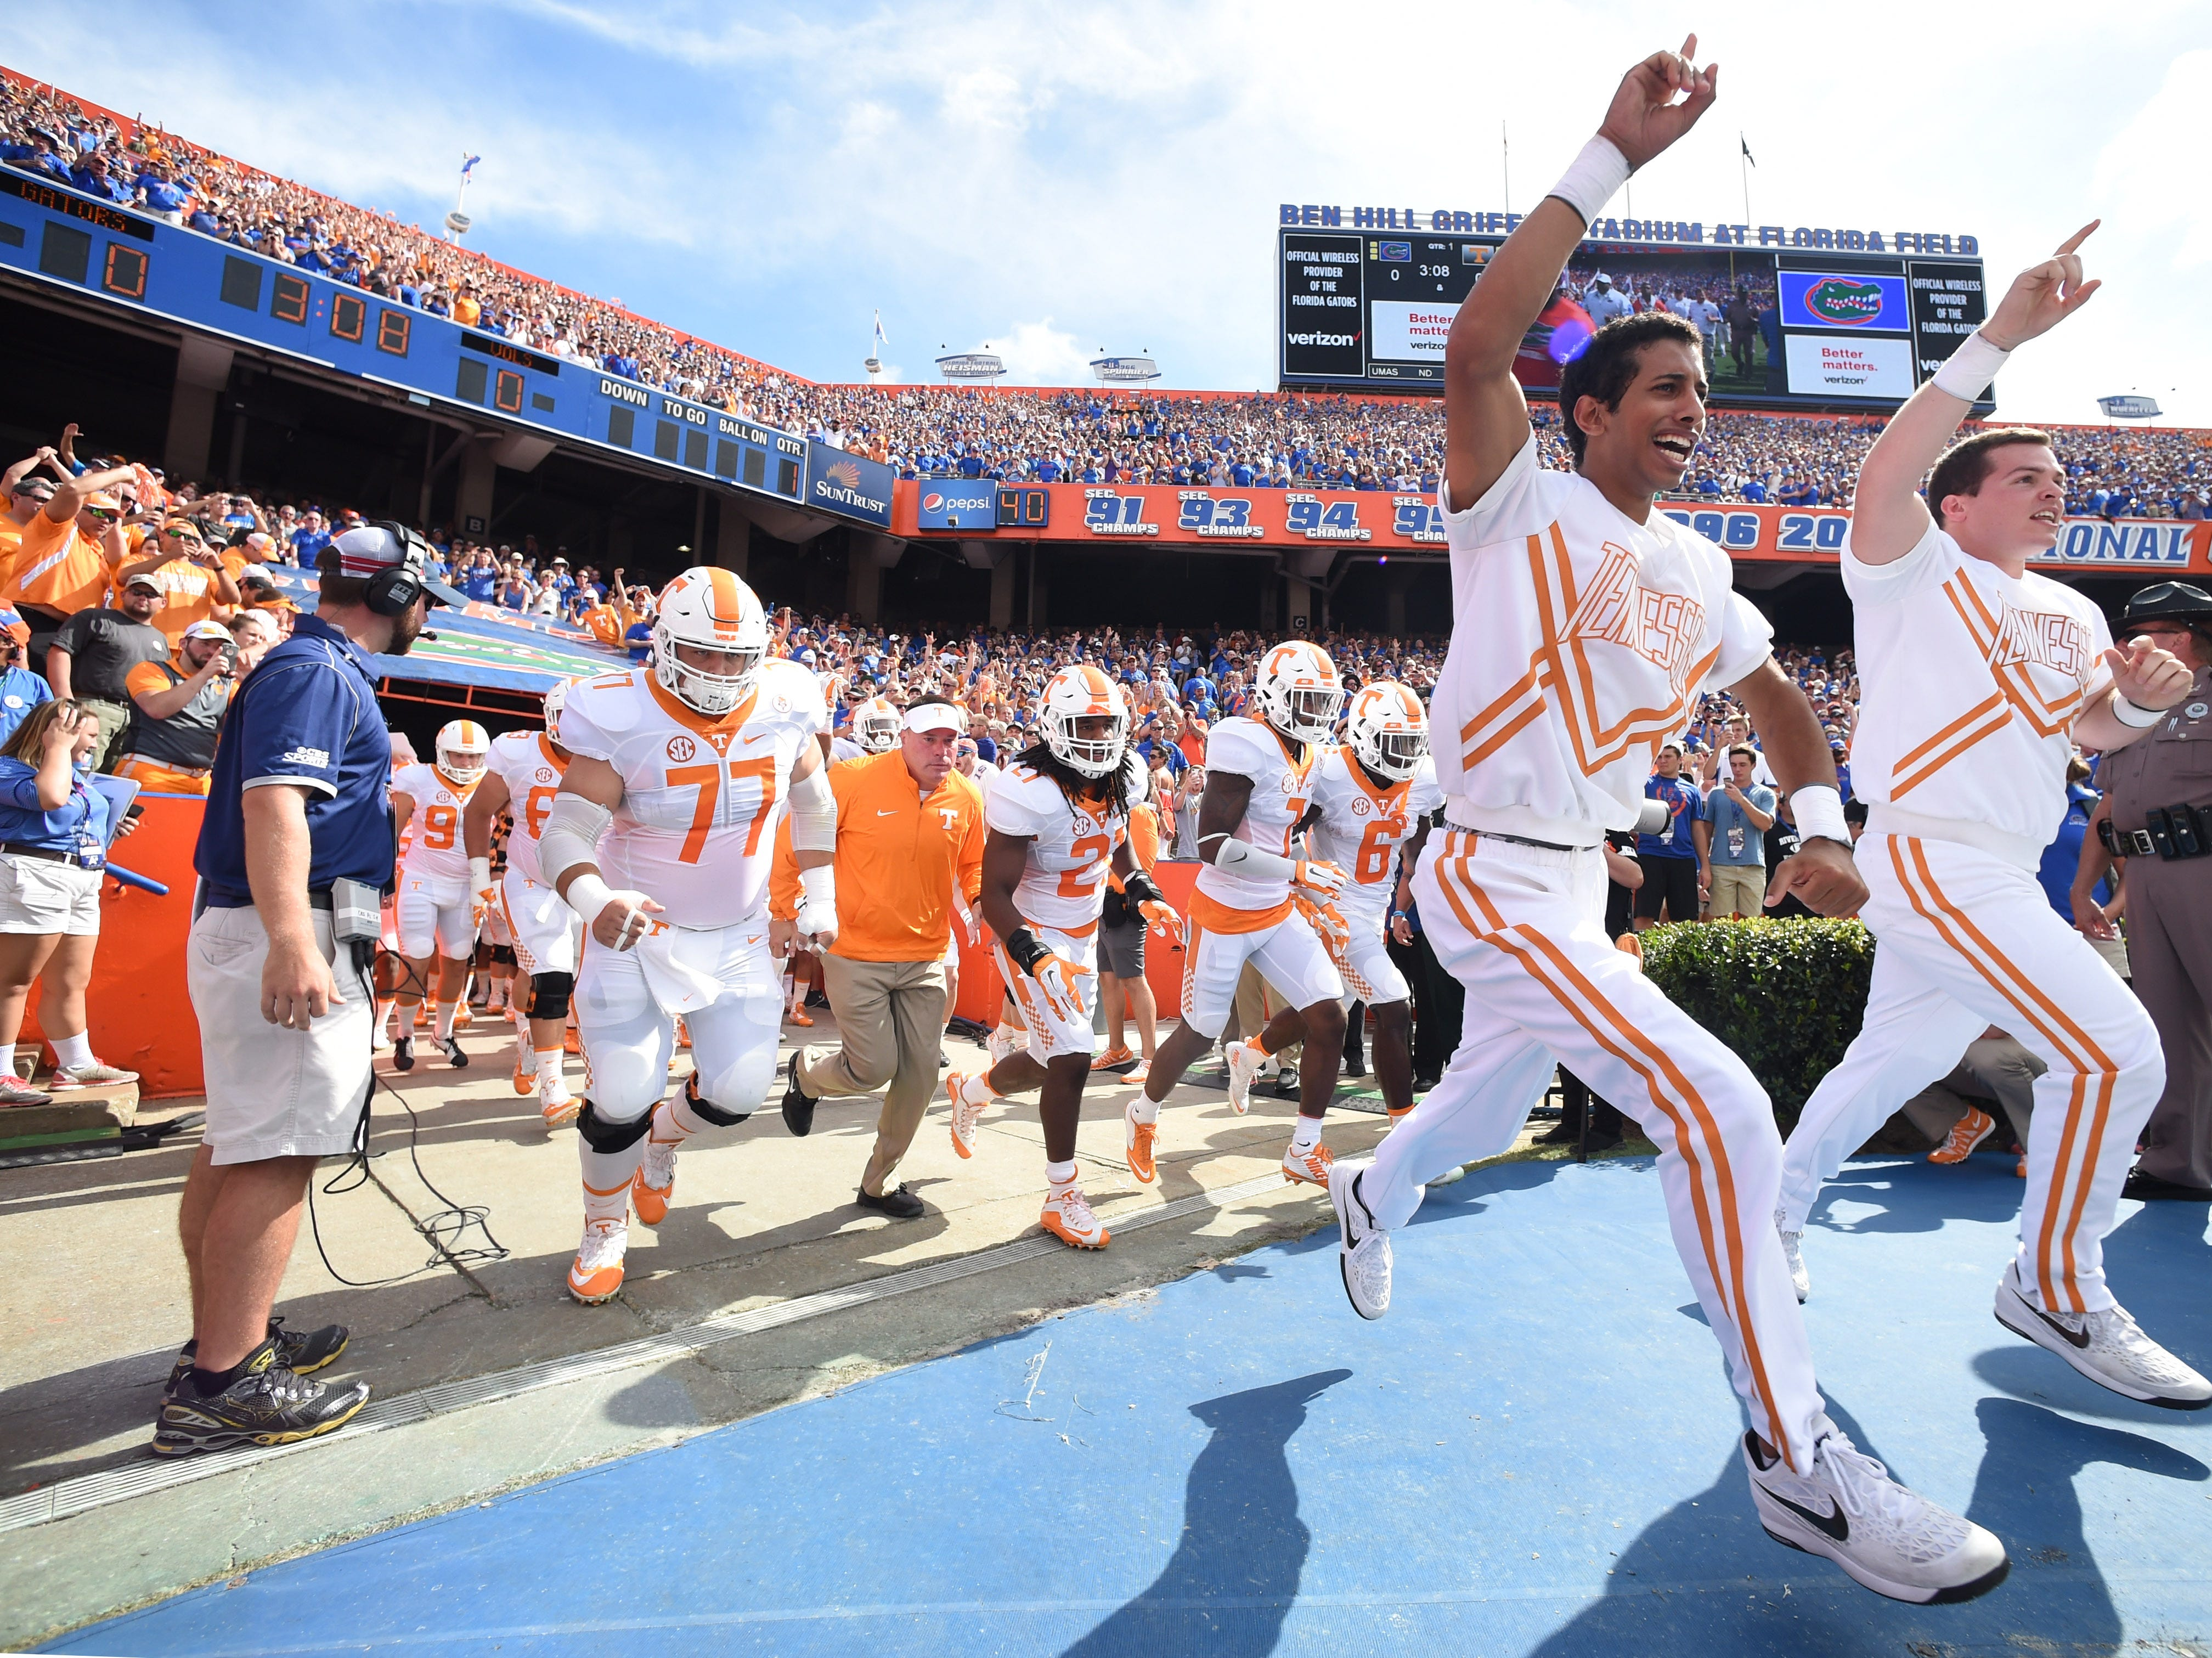 Tennessee cheerleaders lead Tennessee head coach Butch Jones and his team onto the field for the first half against Florida at Ben Hill Griffin Stadium in Gainesville, Fla. on Saturday, Sept. 26, 2015.